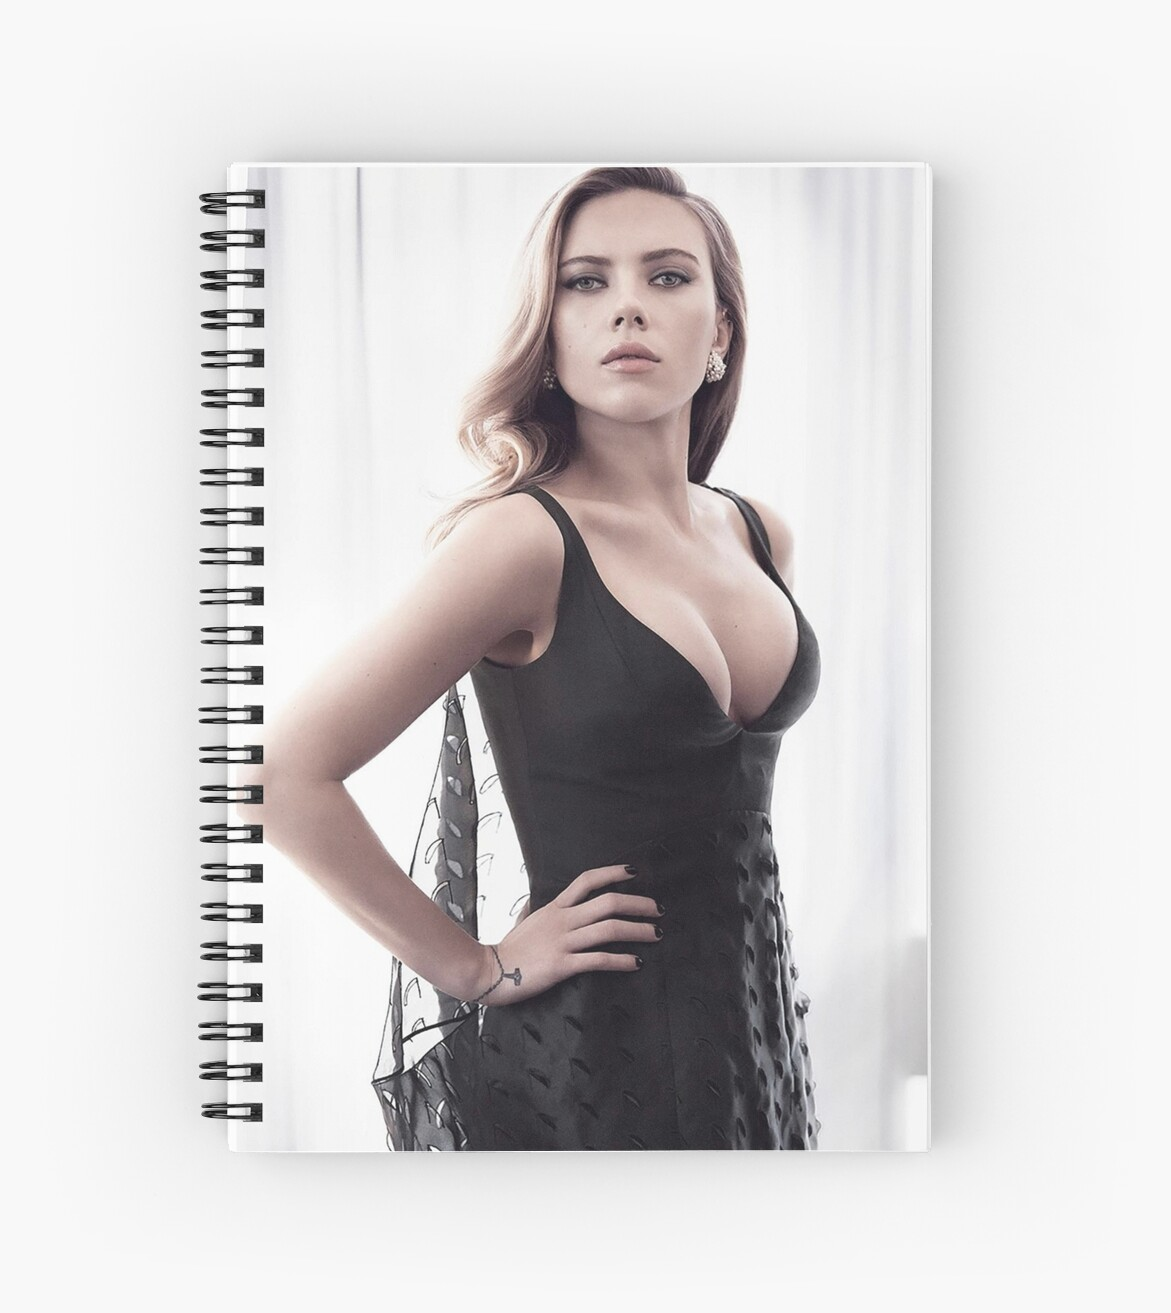 Designer Wall Stickers Quot Hot Scarlett Johansson 3 Quot Spiral Notebooks By Titod